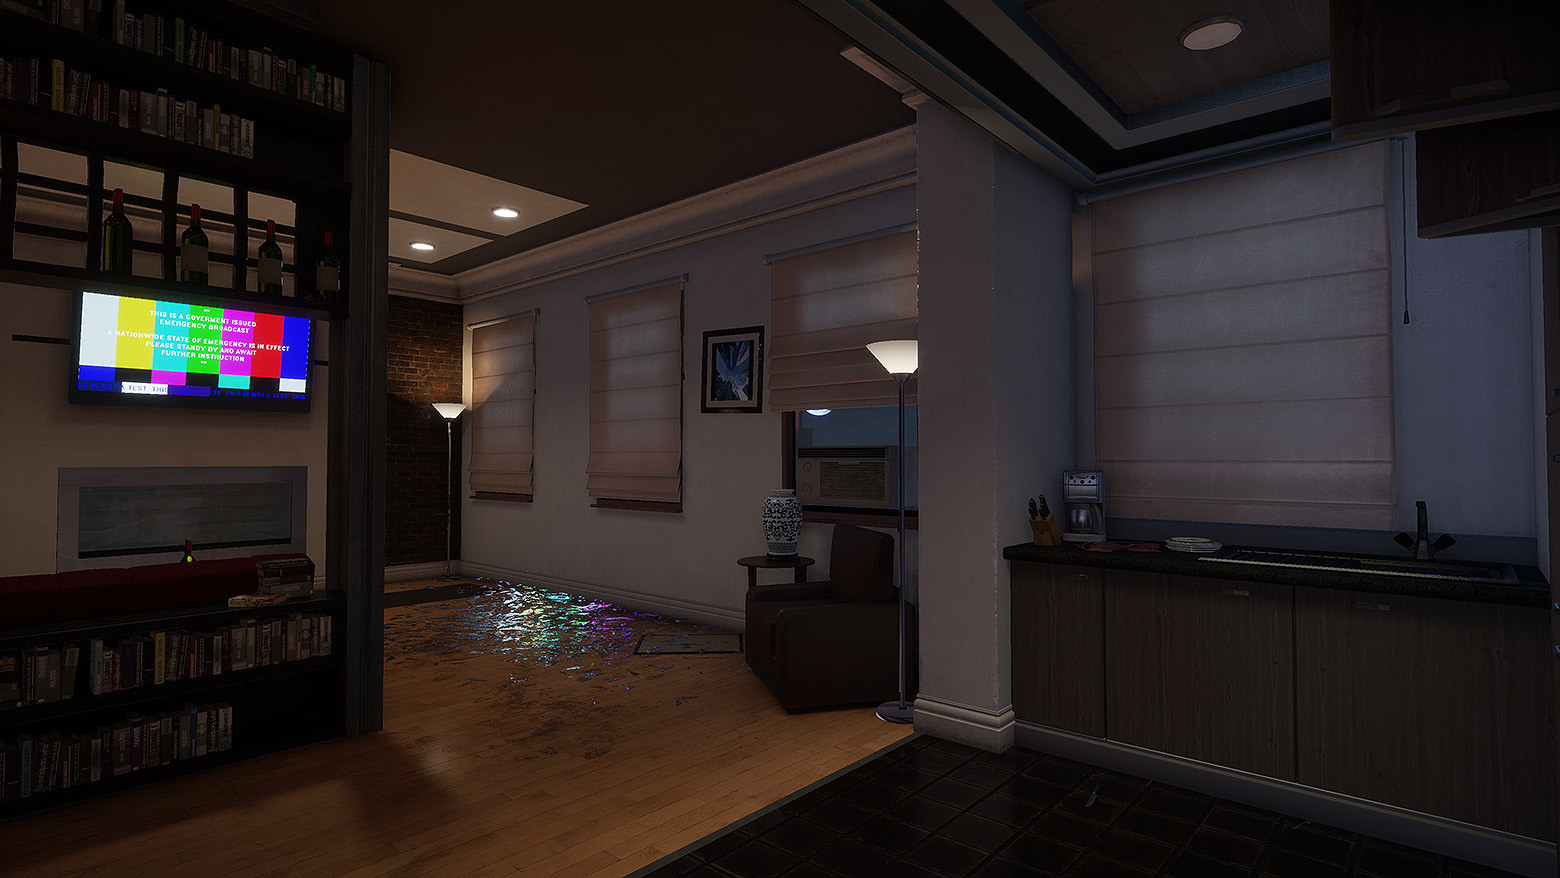 I created some new blinds that allow light to pass through them creating a more natural and realistic look.